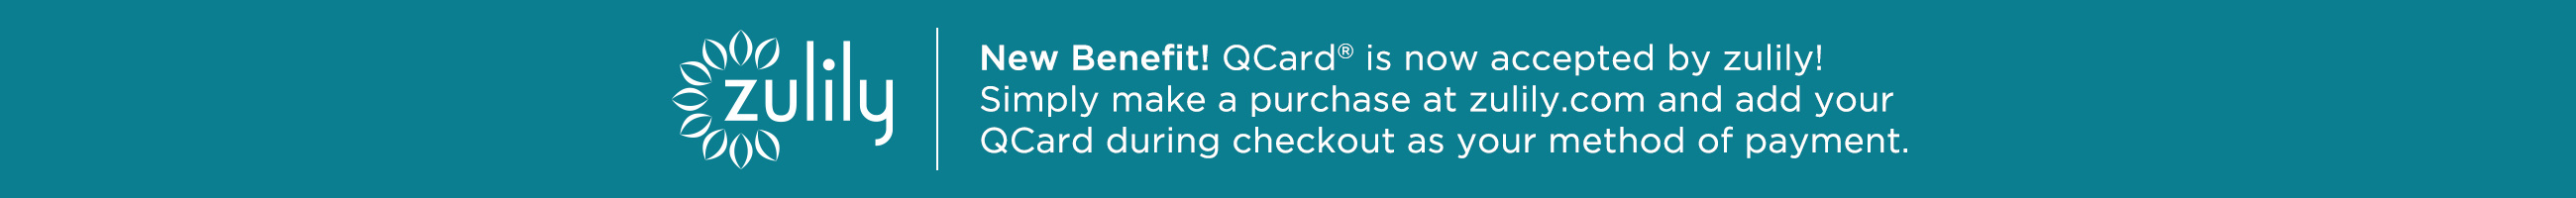 New Benefit! QCard® is now accepted by zulily! Simply make a purchase at zulily.com and add your QCard during checkout as your method of payment.